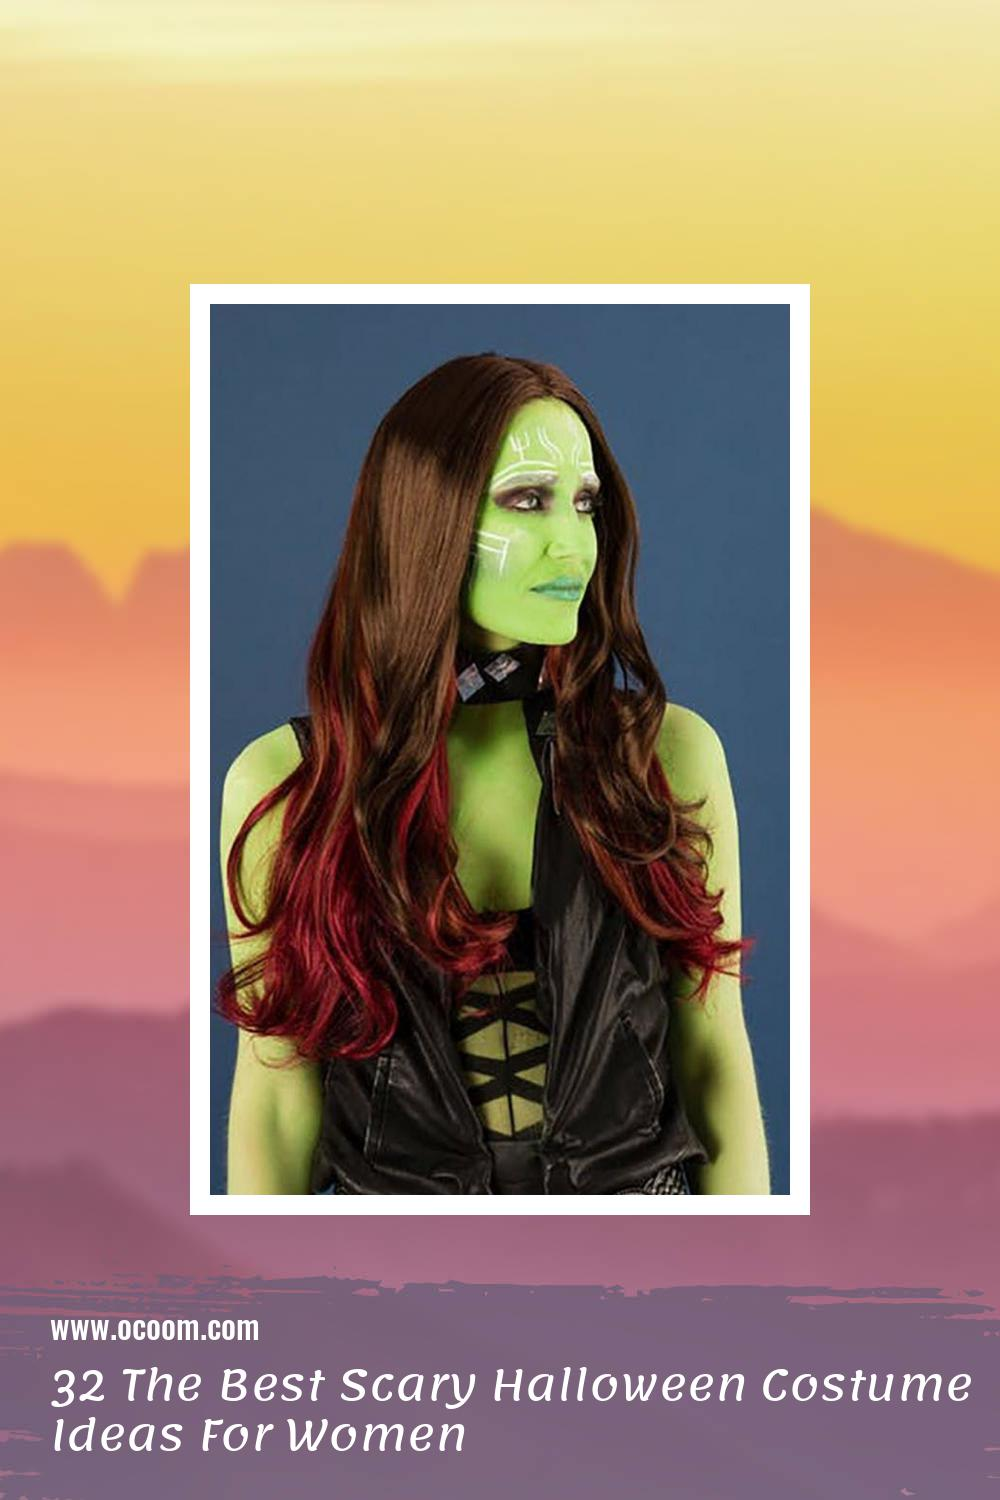 32 The Best Scary Halloween Costume Ideas For Women 60